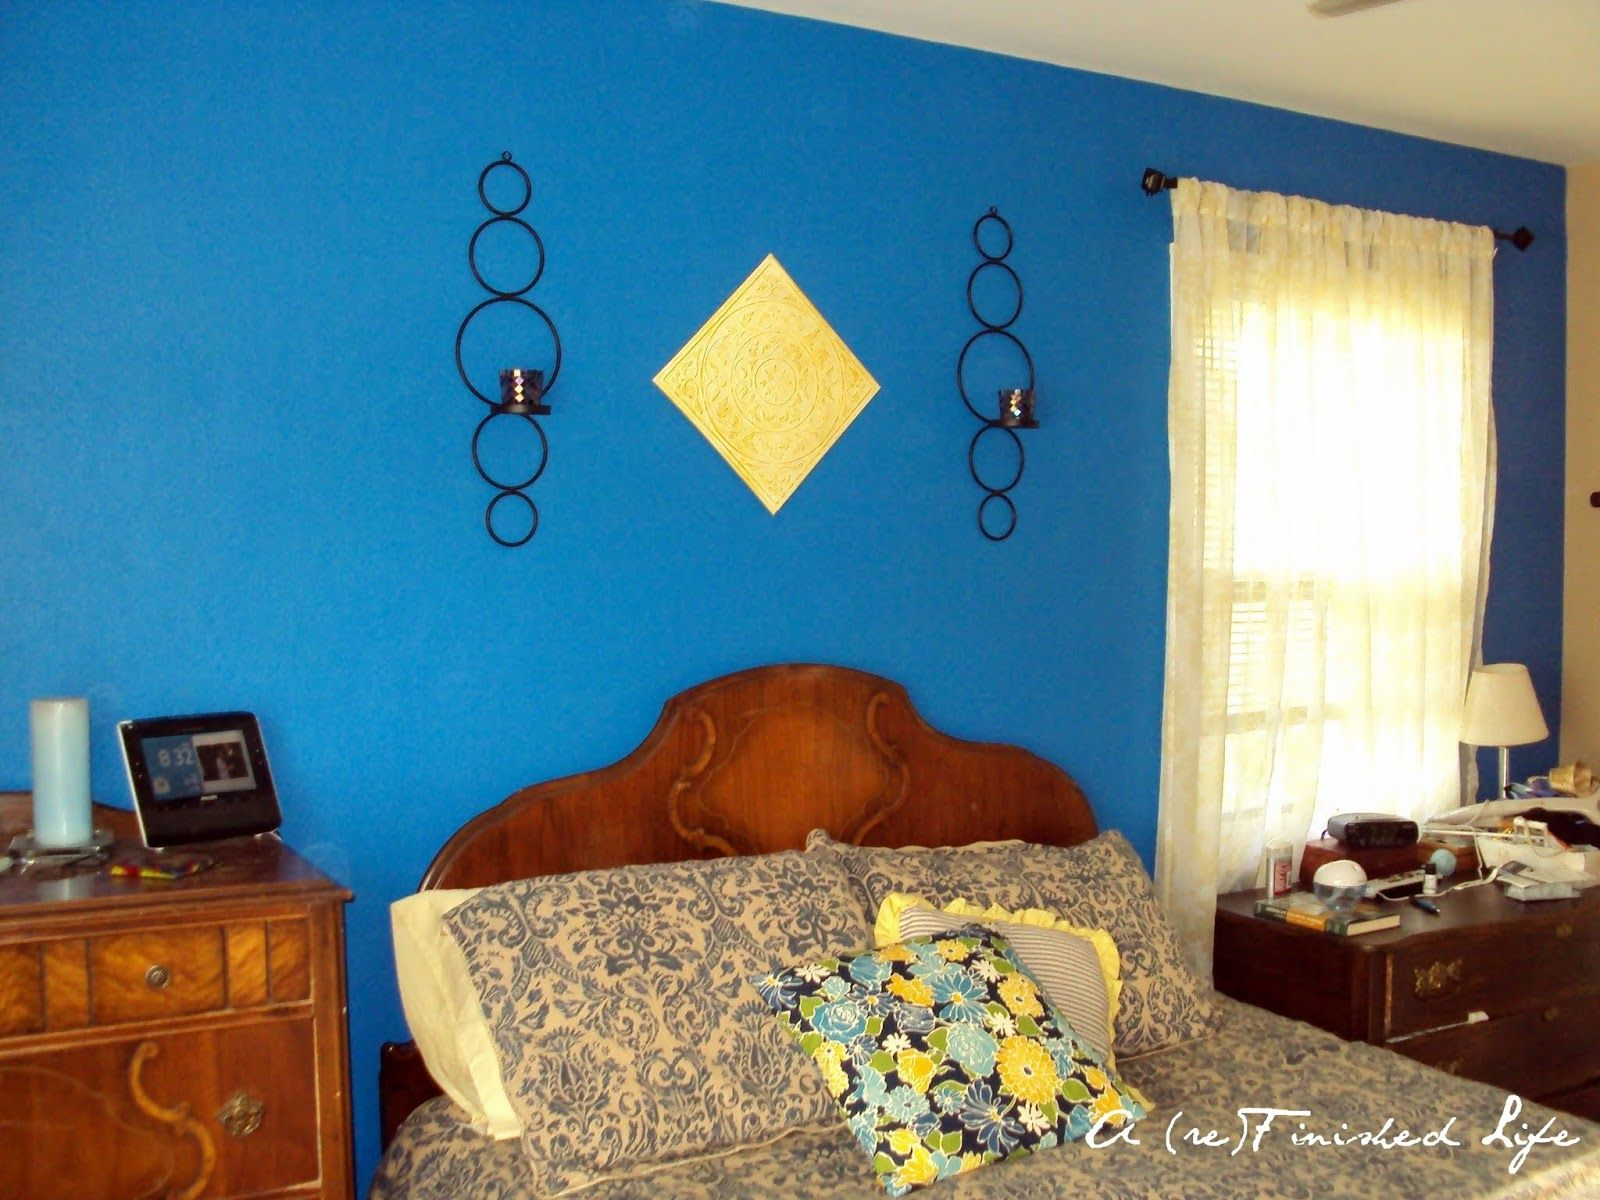 A Refinished Life: Master Bedroom Wall